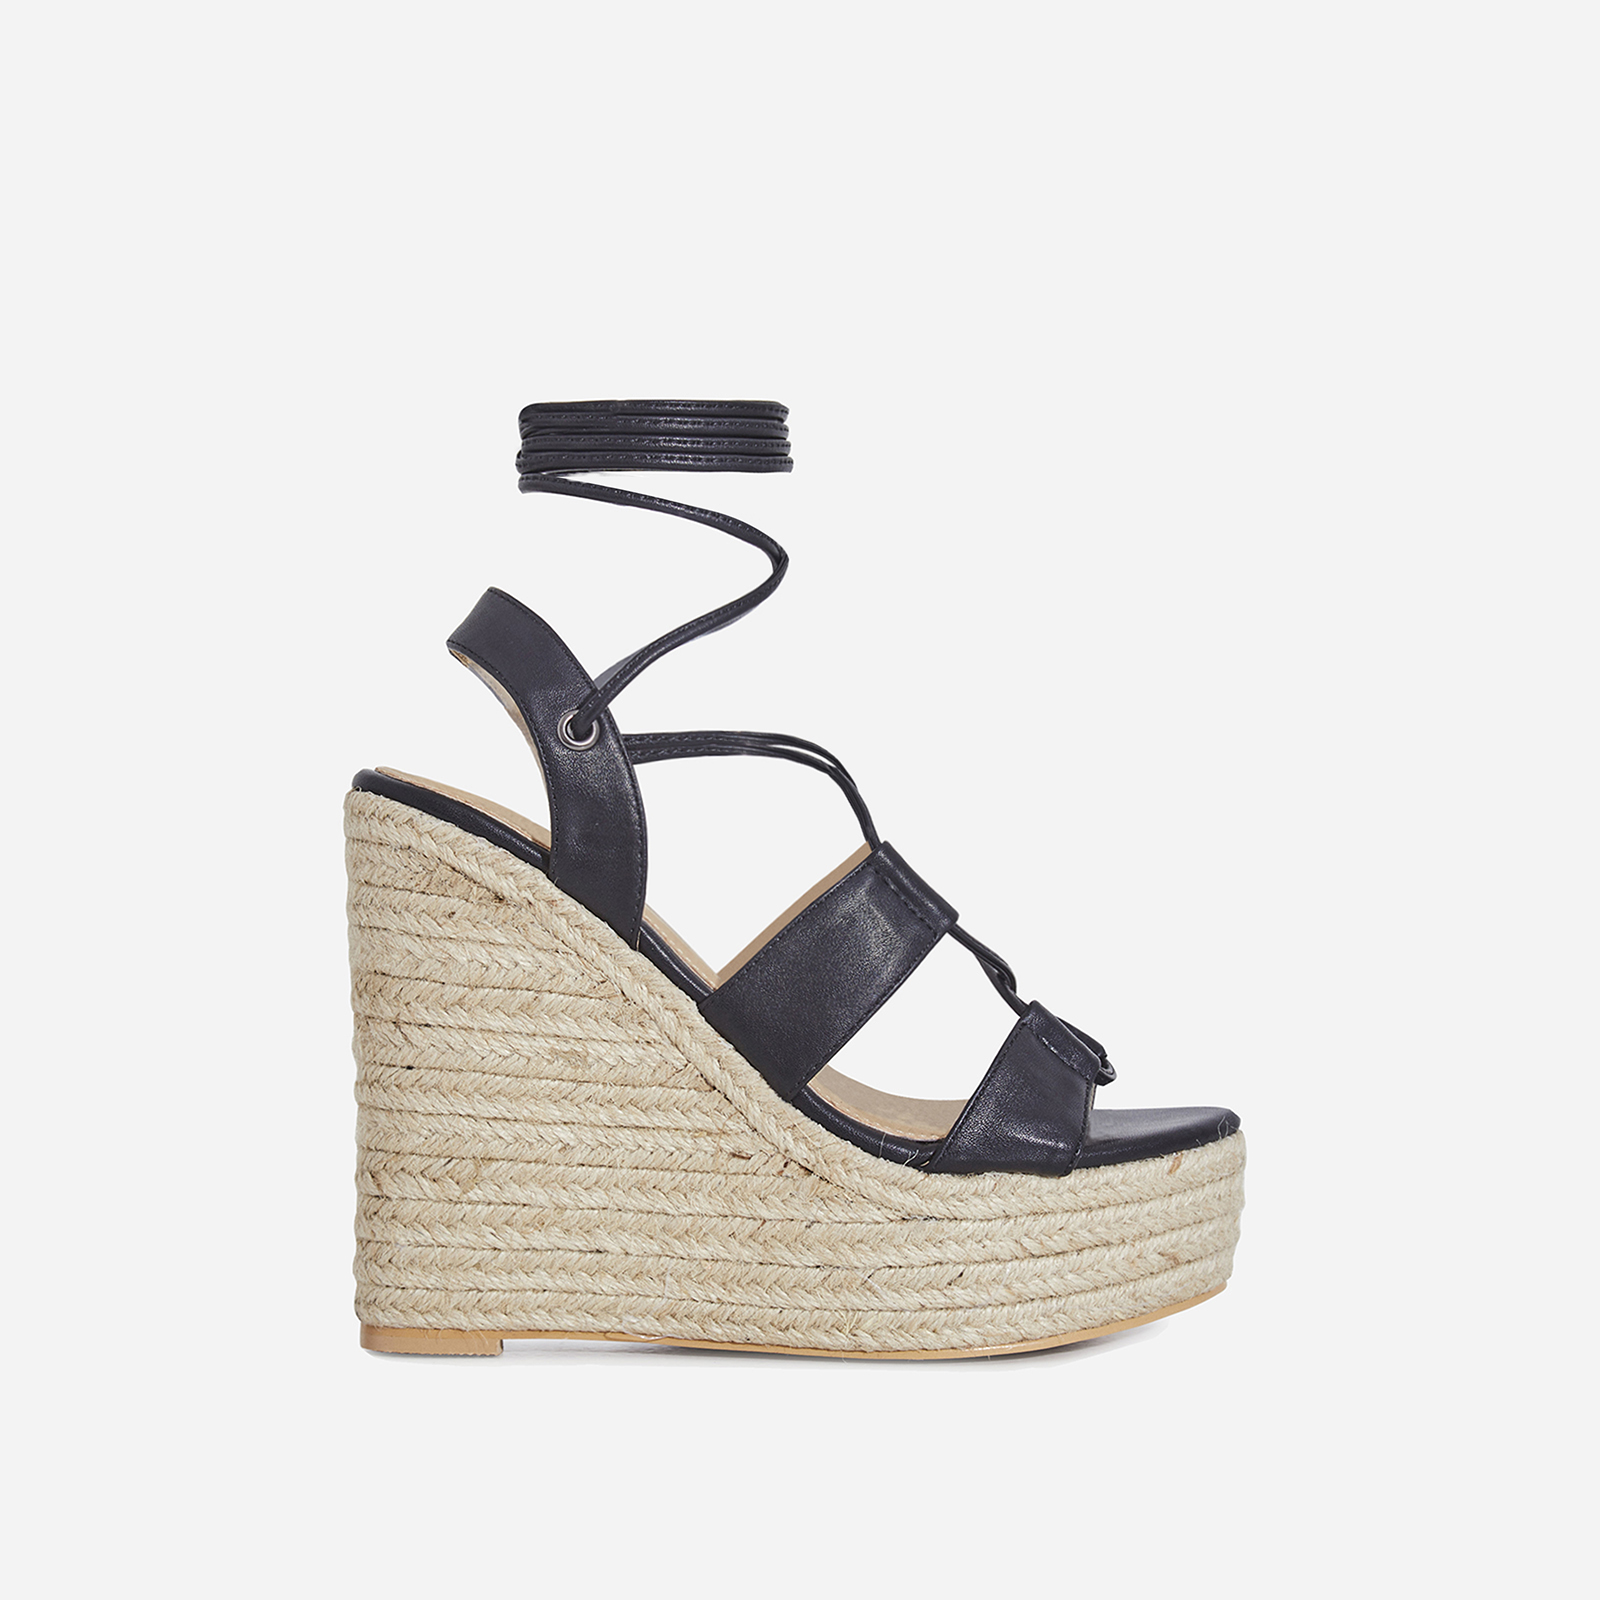 Emelia Lace Up Espadrille Wedge Platform Heel In Black Faux Leather